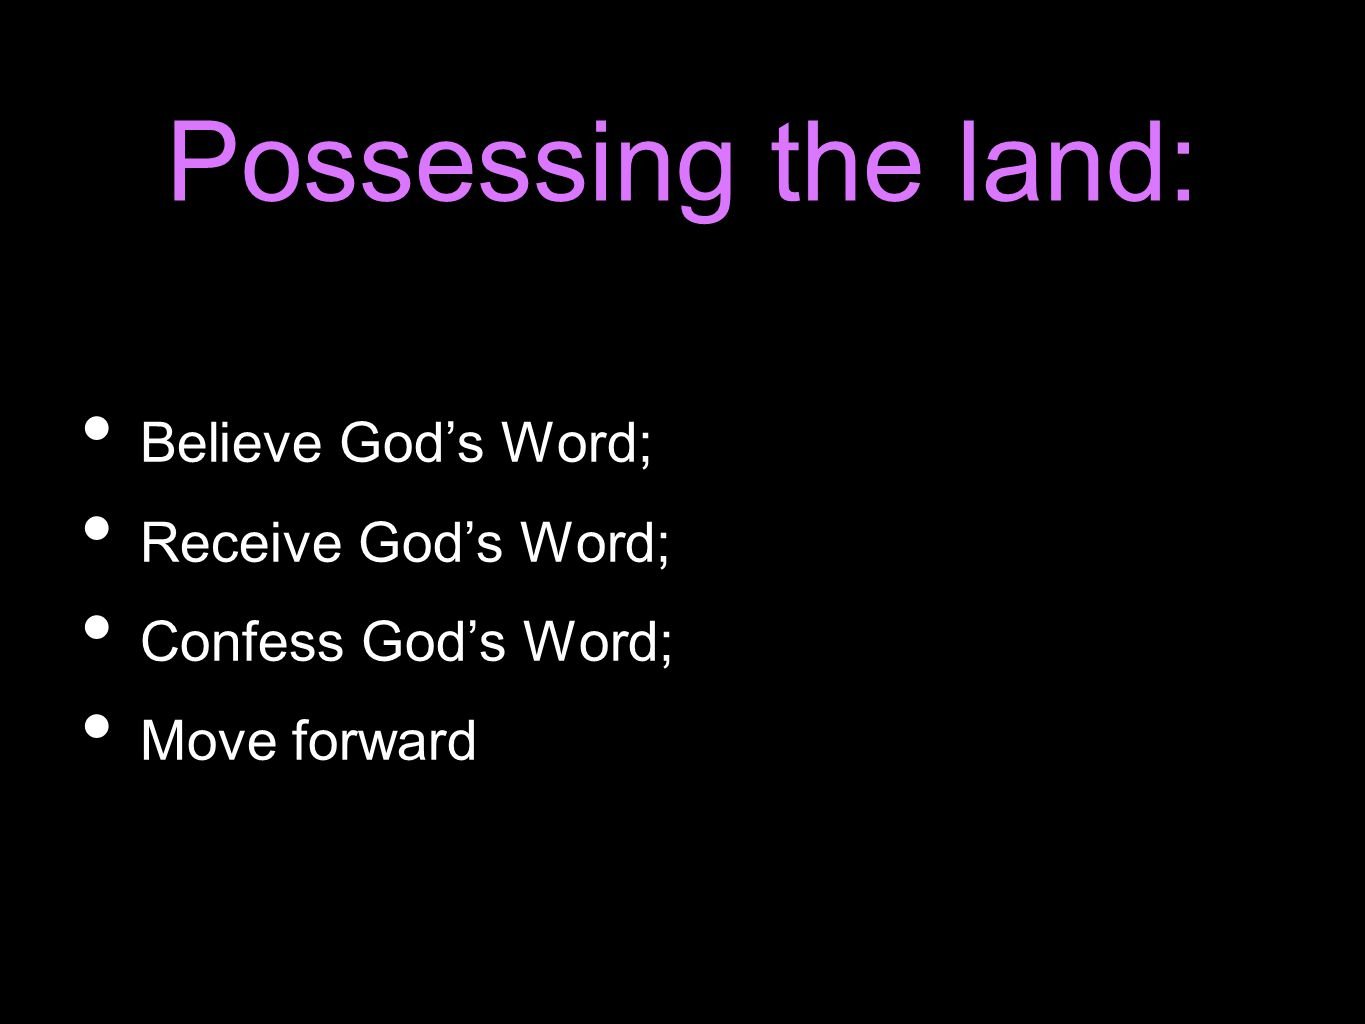 Possessing the land: Believe God's Word; Receive God's Word; Confess God's Word; Move forward